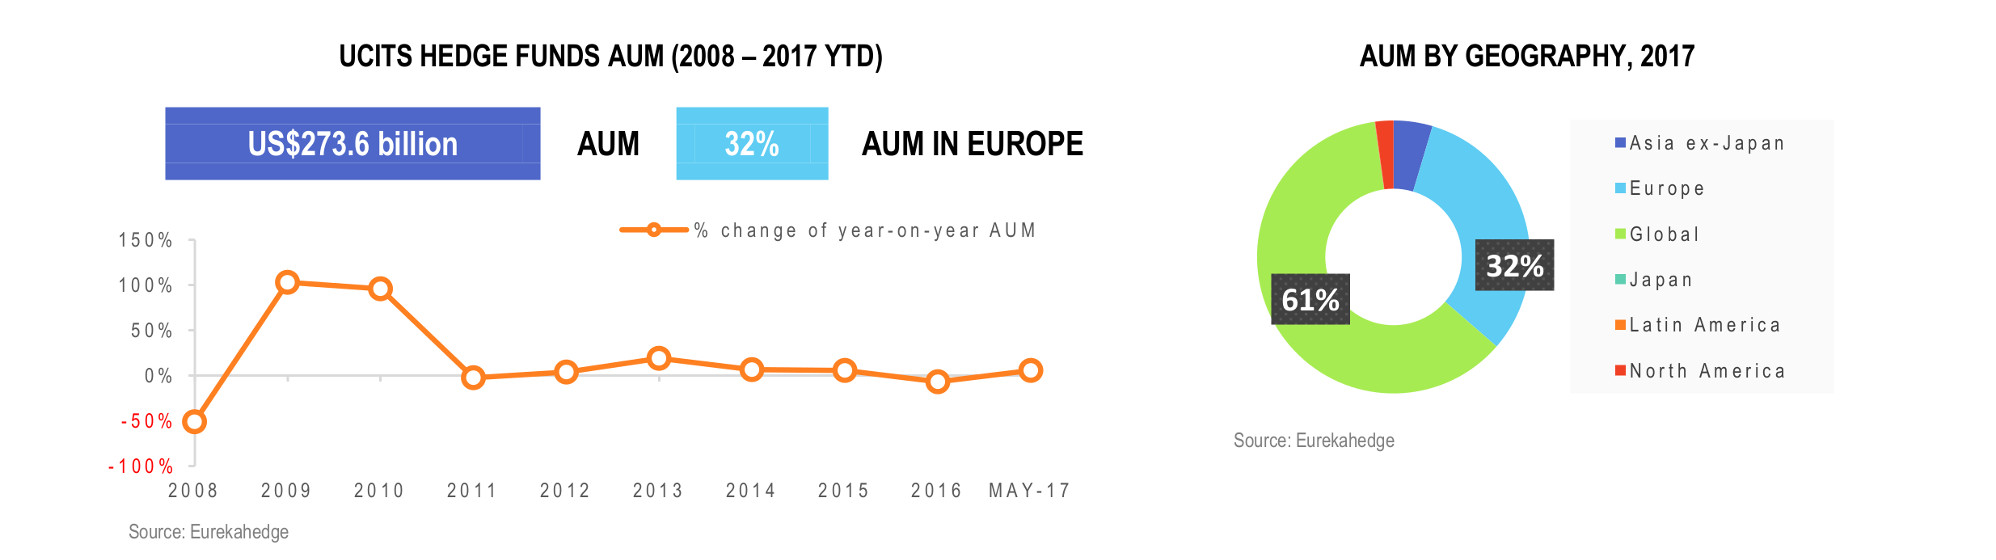 UCITS Hedge Fund Infographic July 2017 aum and geography